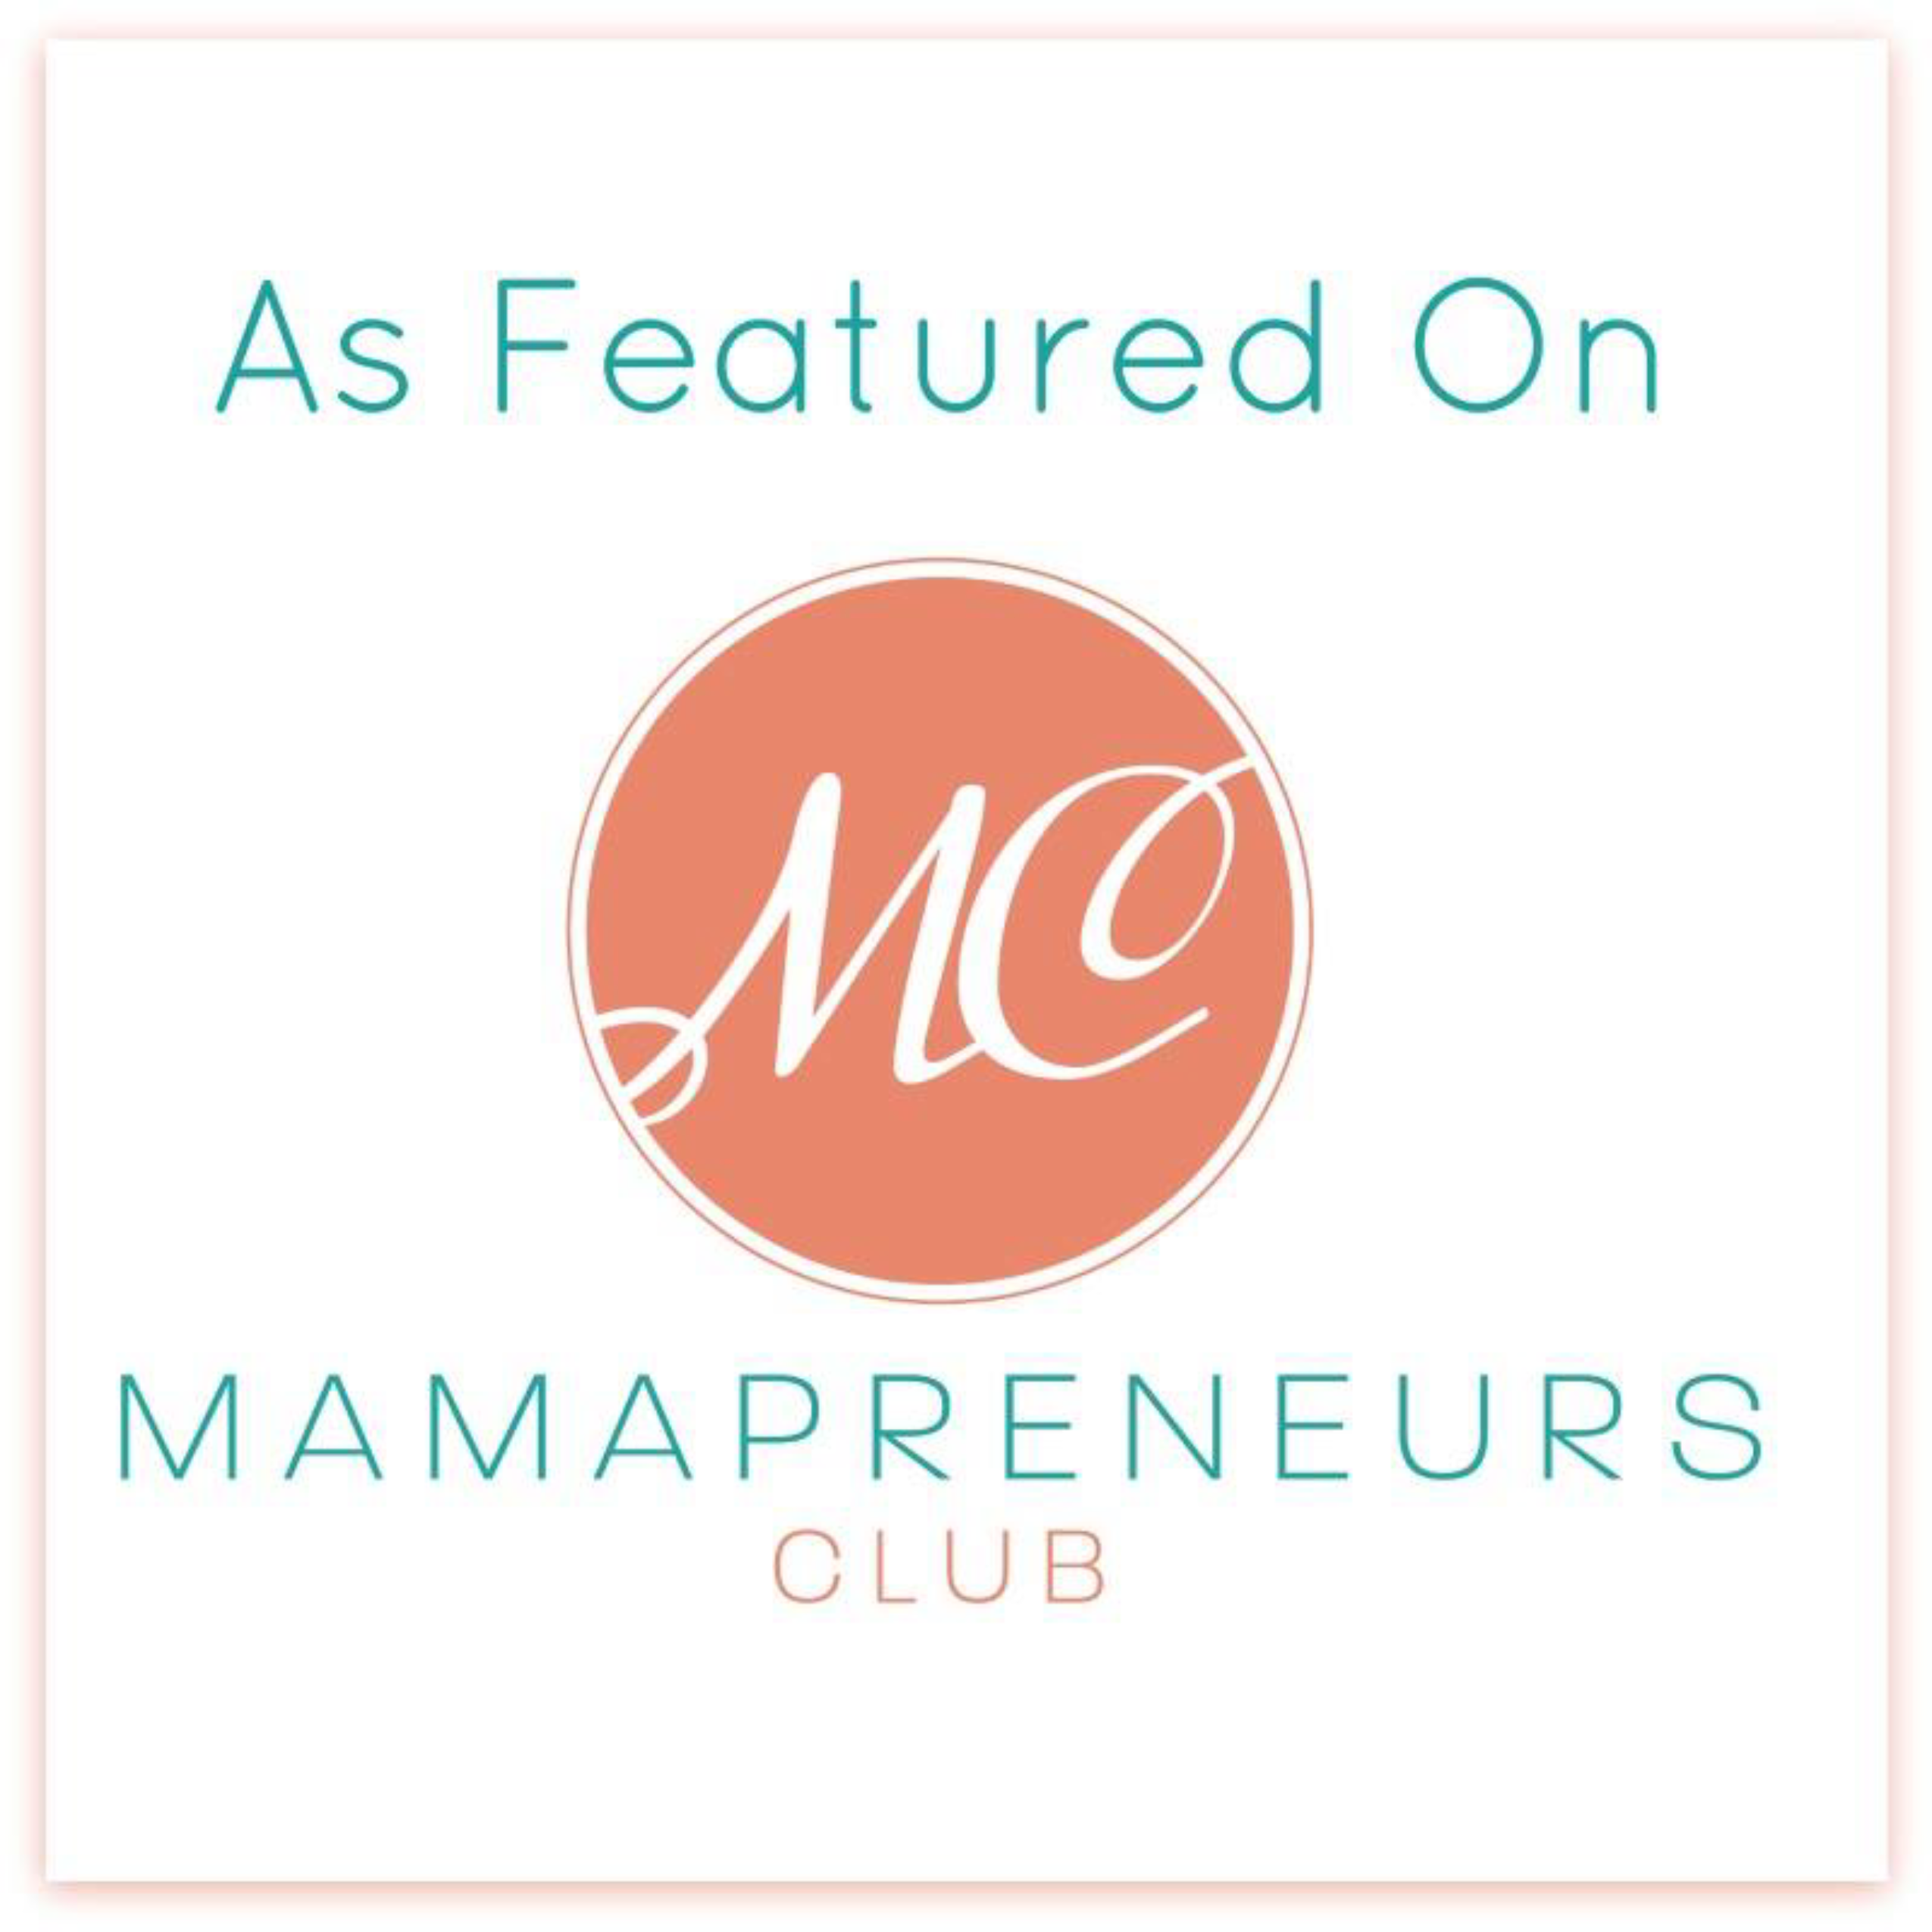 Featured on Mamaprenuers Club